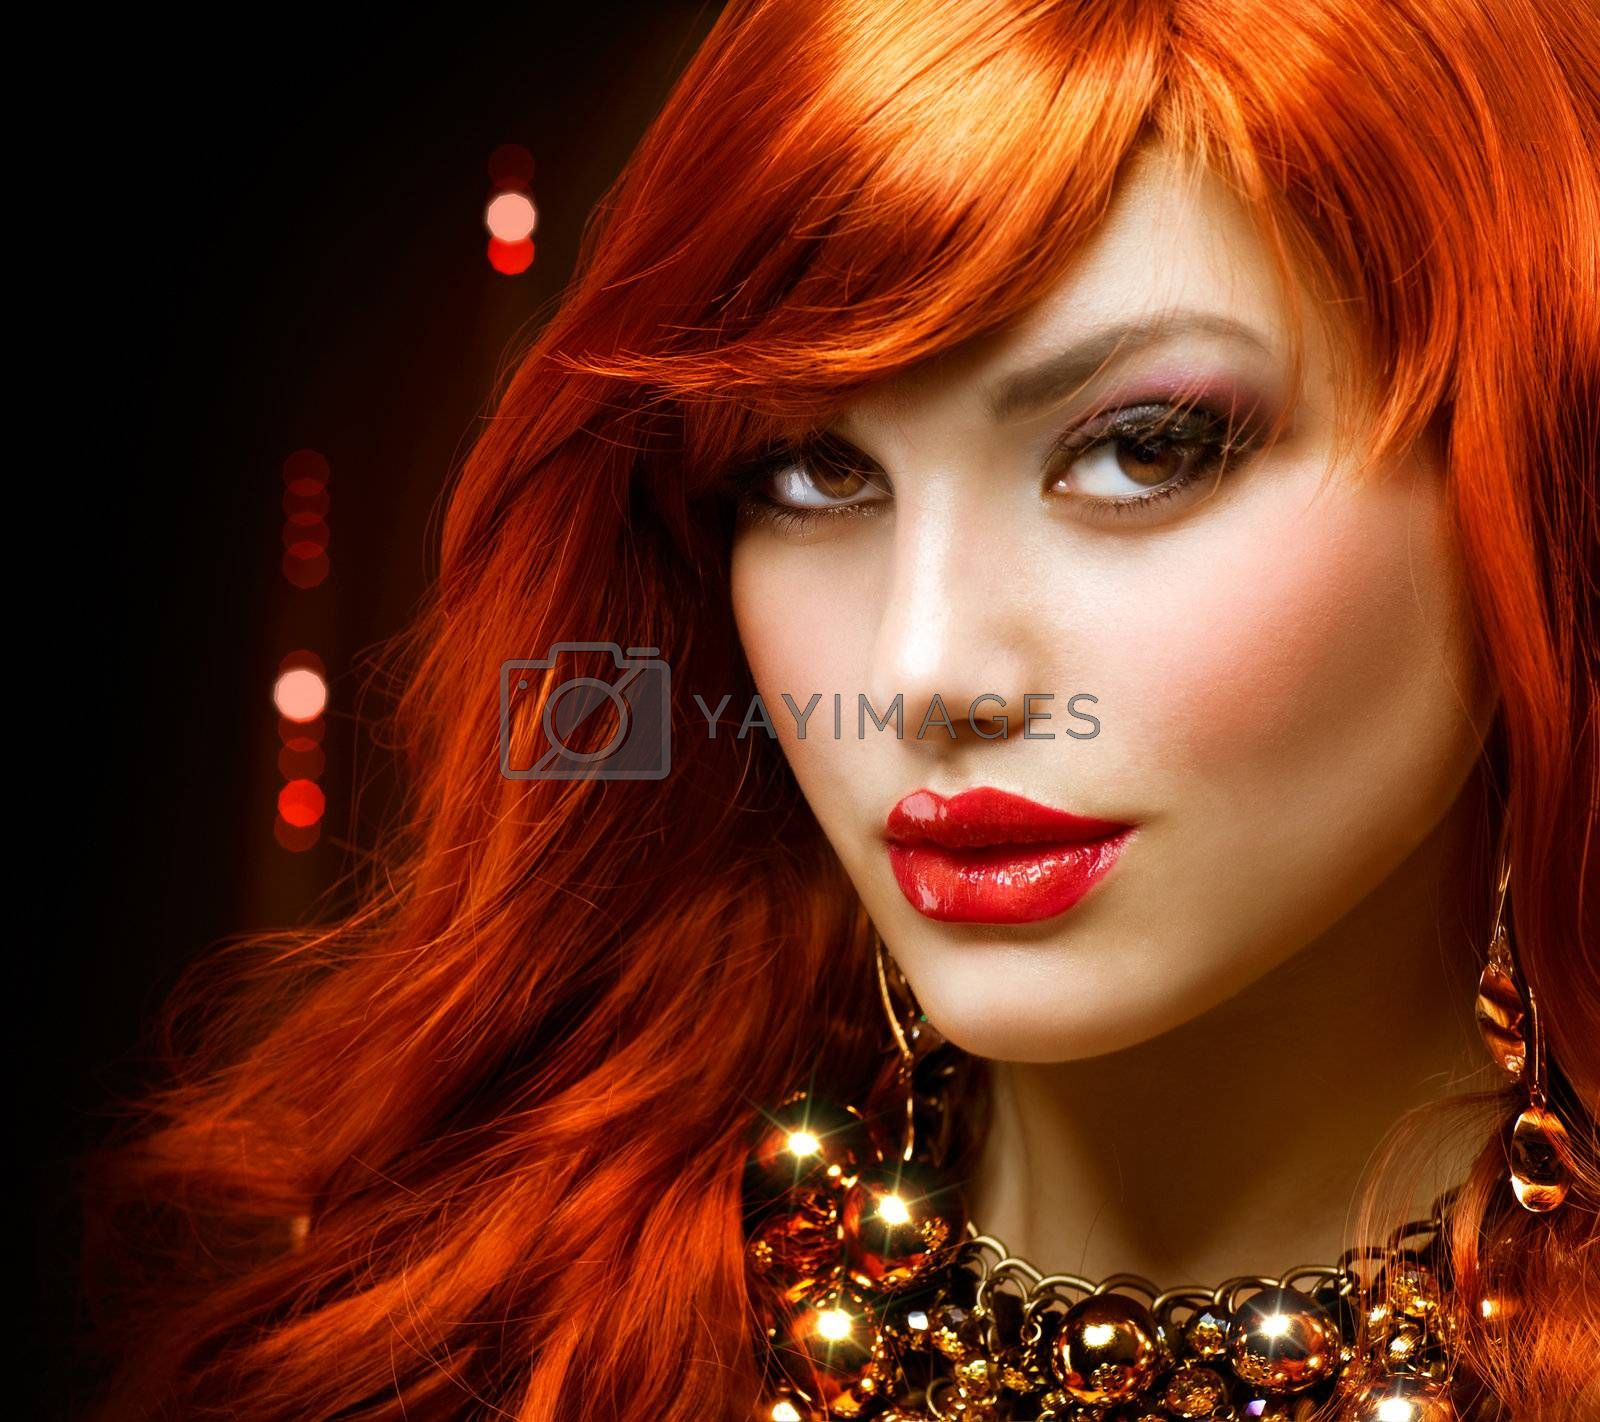 Fashion Red Haired Girl Portrait. Jewelry